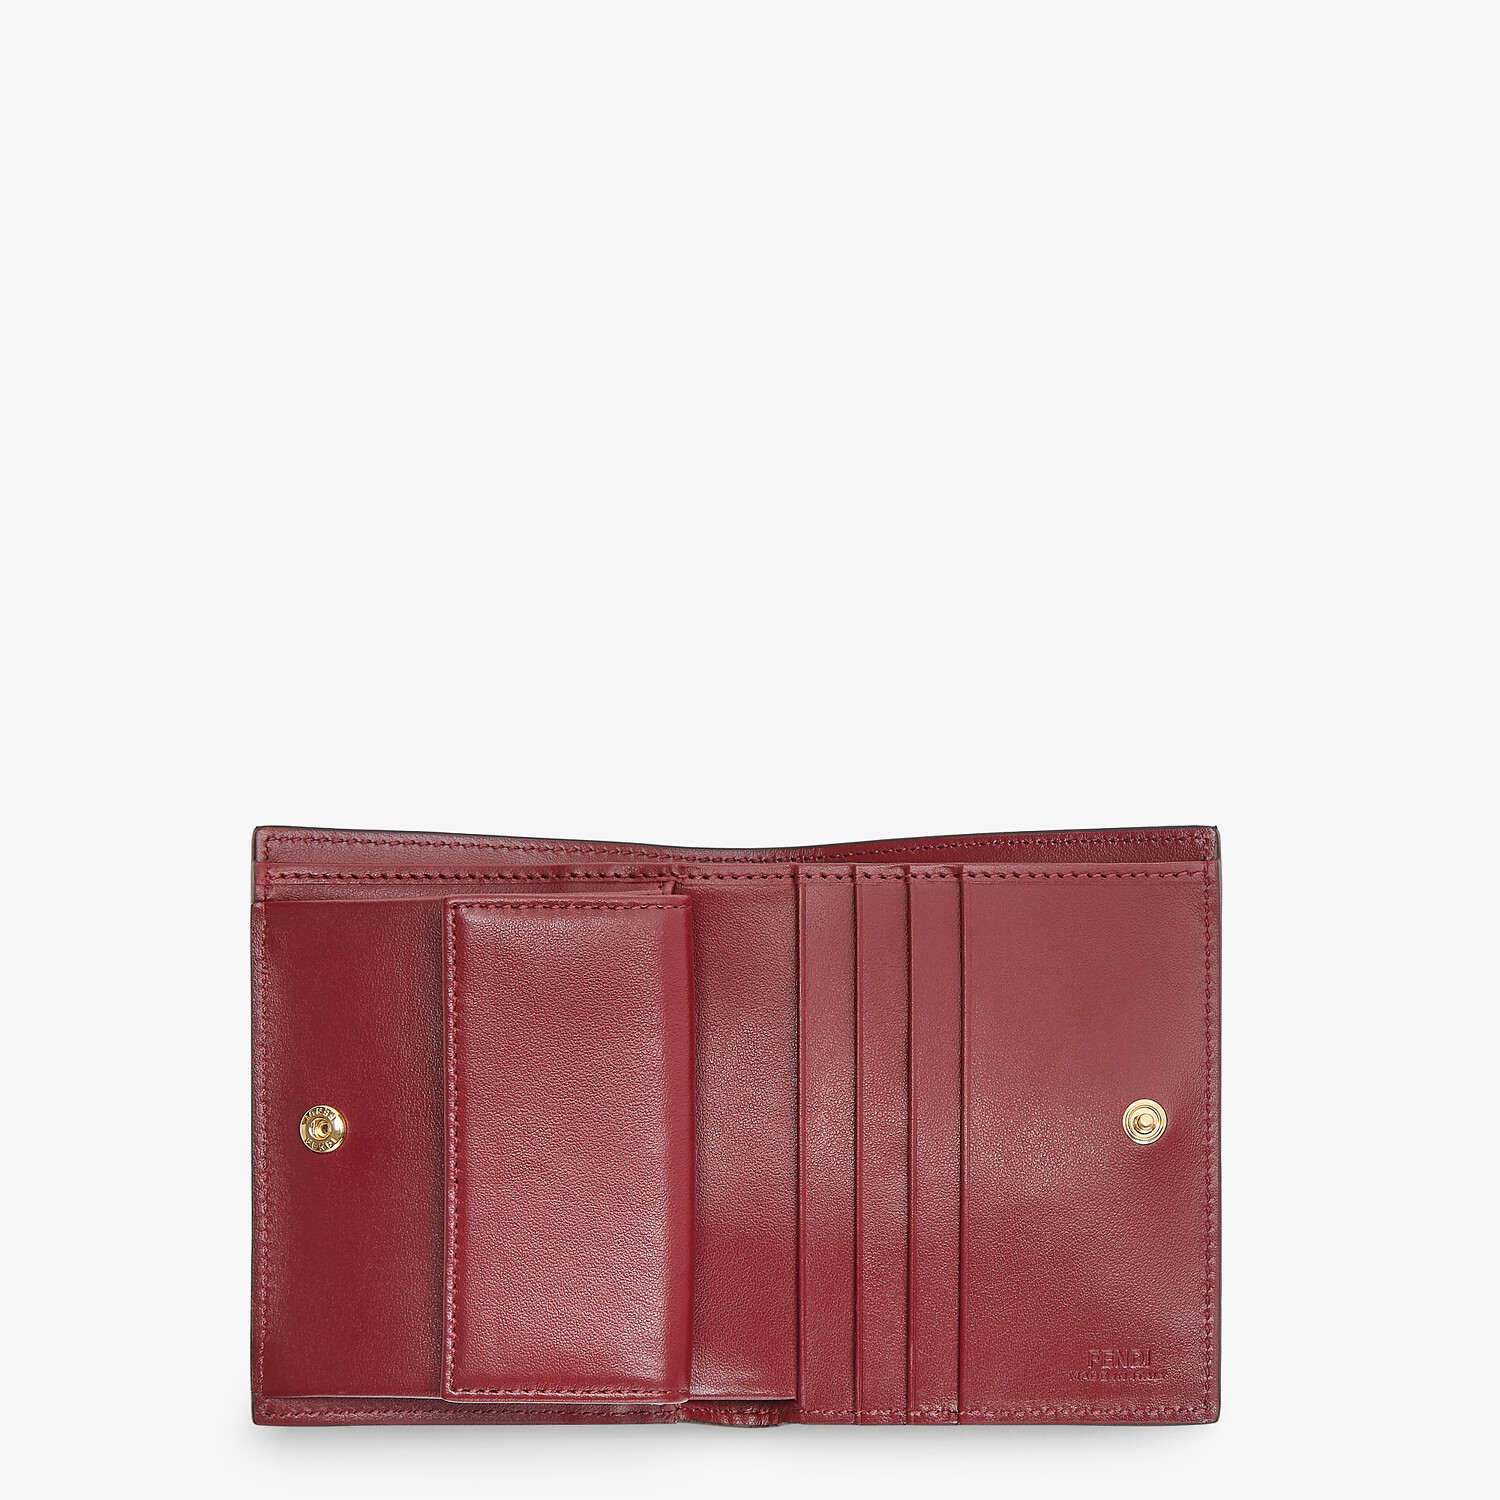 FENDI BIFOLD - Burgundy leather compact wallet - view 3 detail